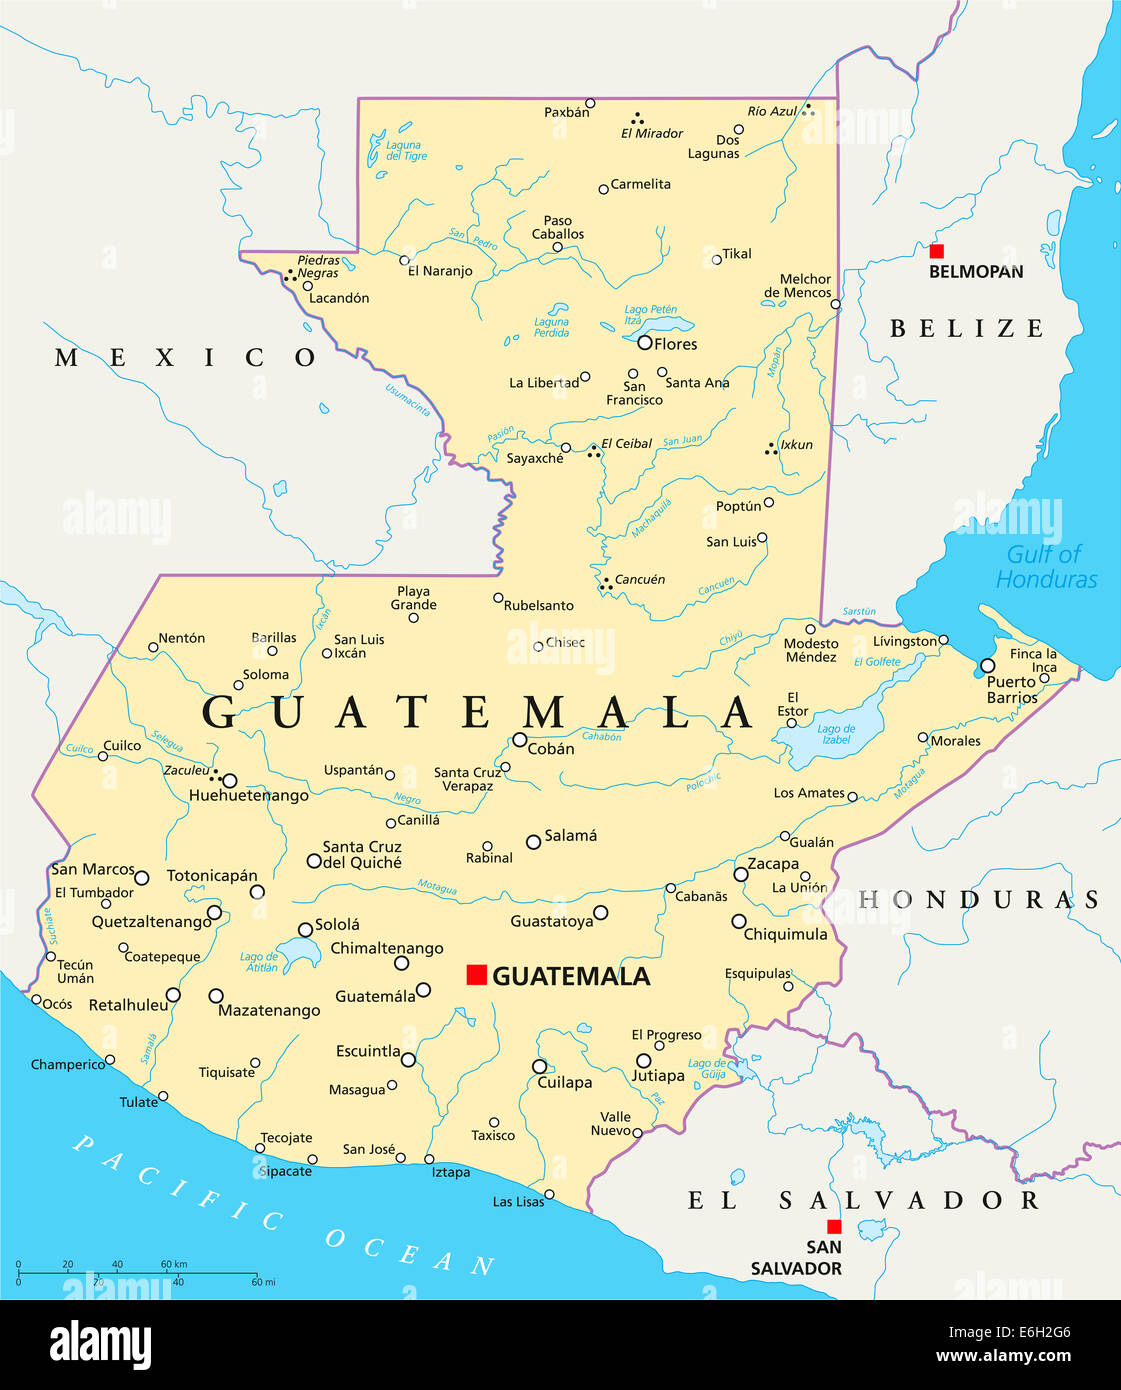 Guatemala Political Map With Capital Guatemala City National - Political map of guatemala